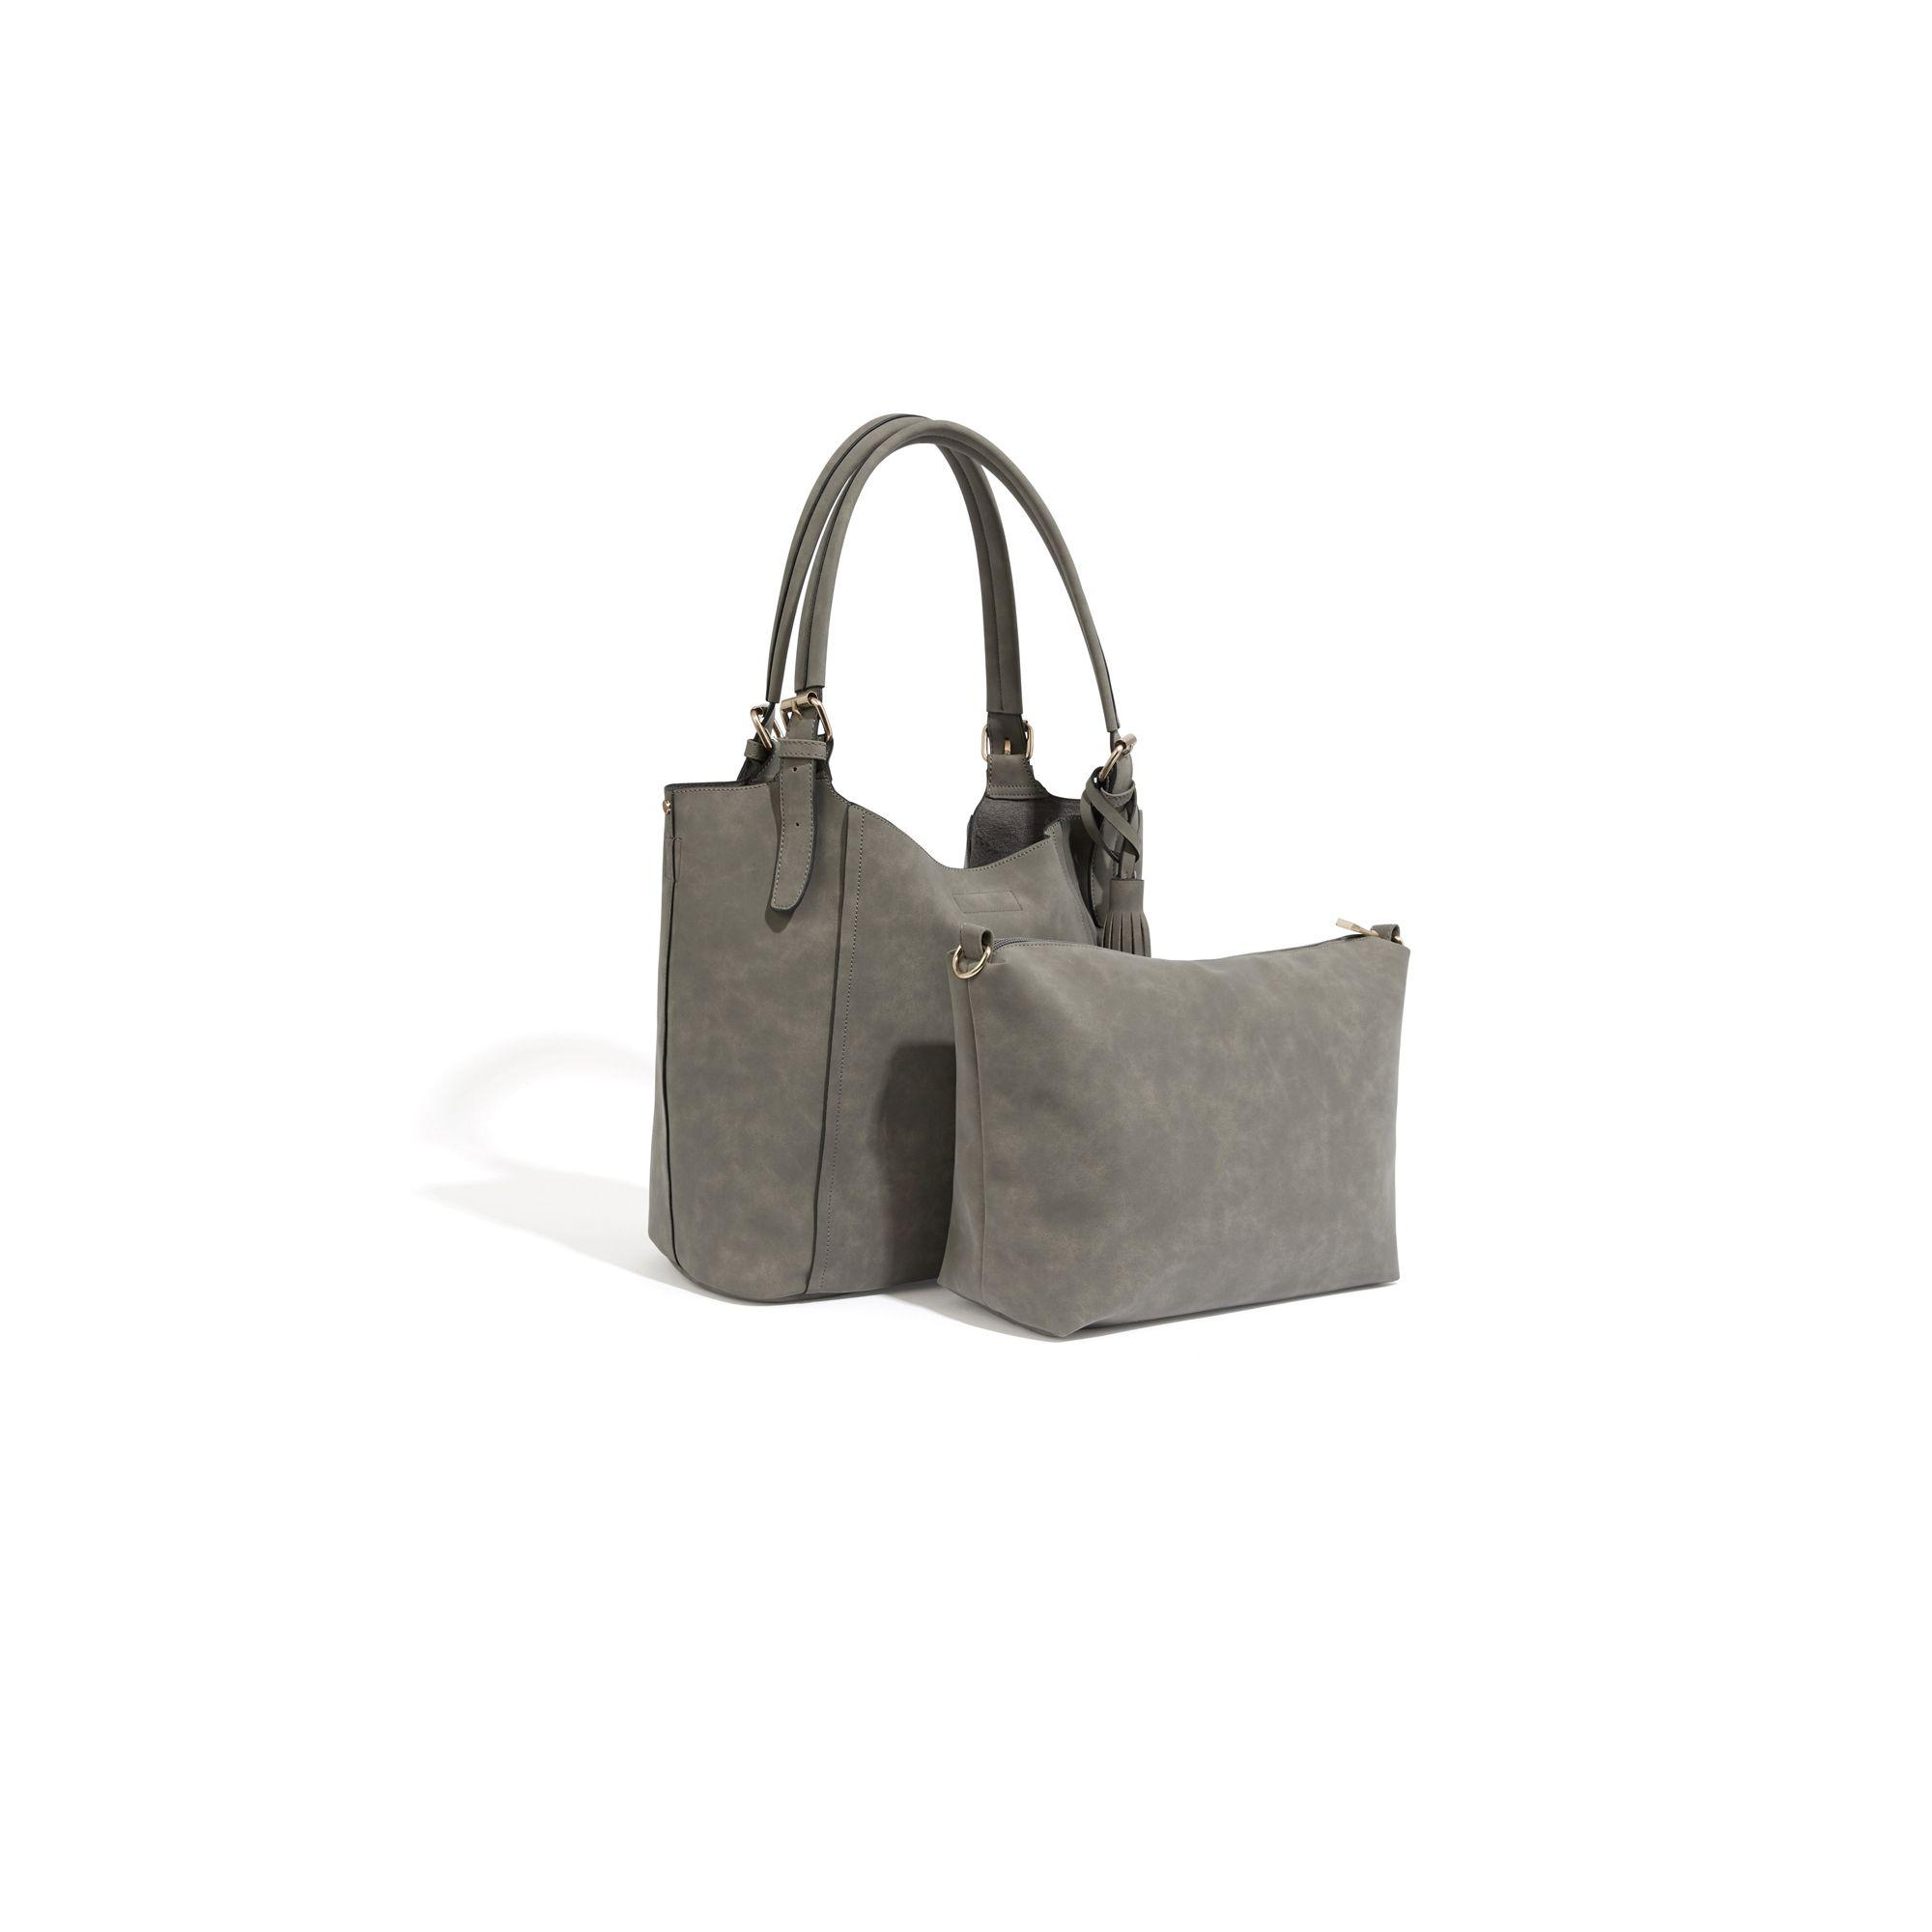 a5cef5cdaeb Oasis Tote Bag in Gray - Lyst